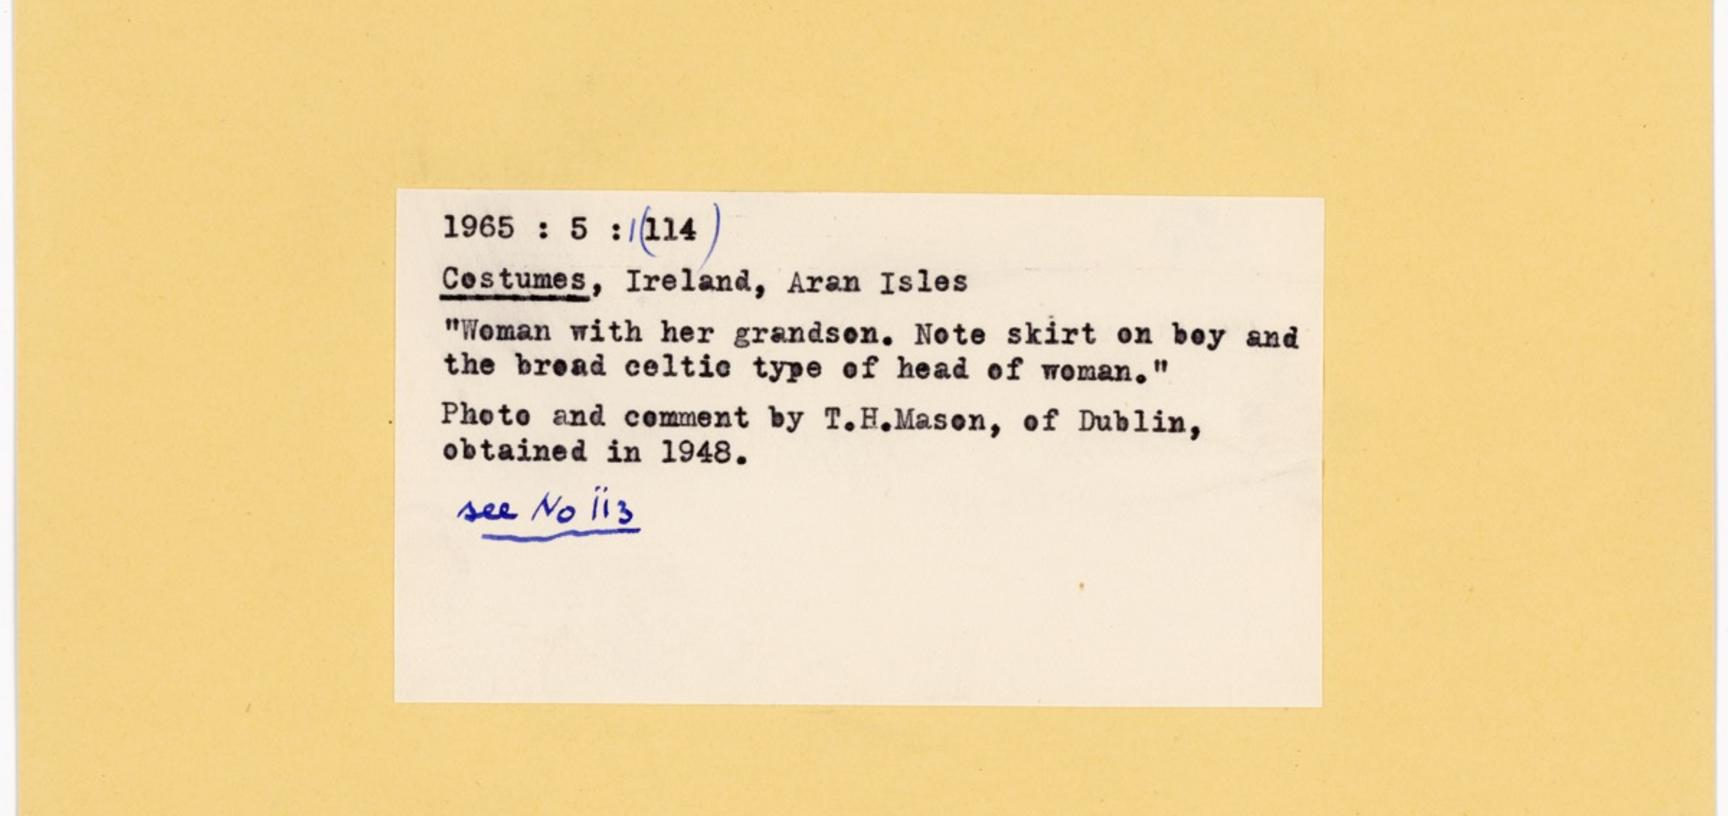 Reverse of the previous index card, showing Ellen Ettlinger's typed label with notes and attribution.